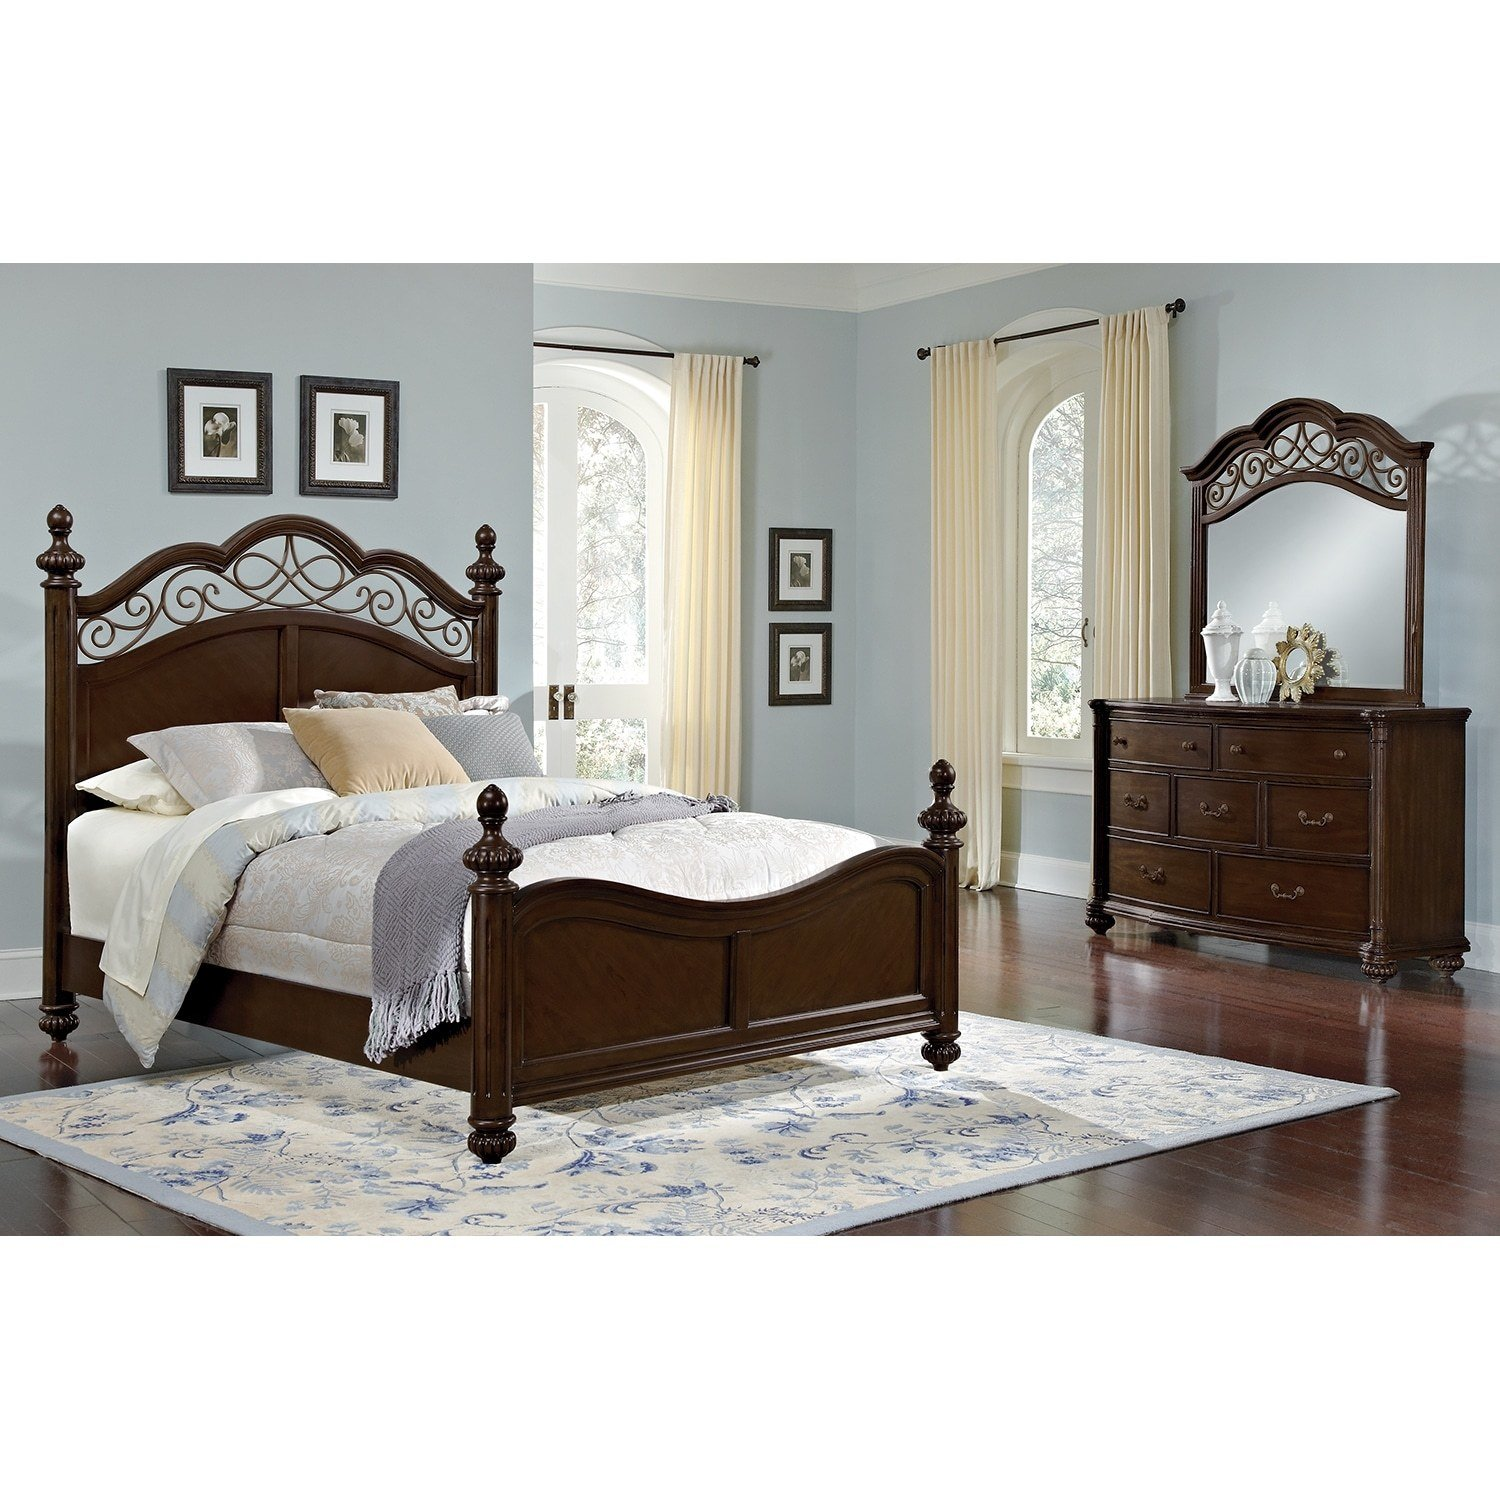 Best Derbyshire Bedroom 5 Pc King Bedroom Value City Furniture With Pictures